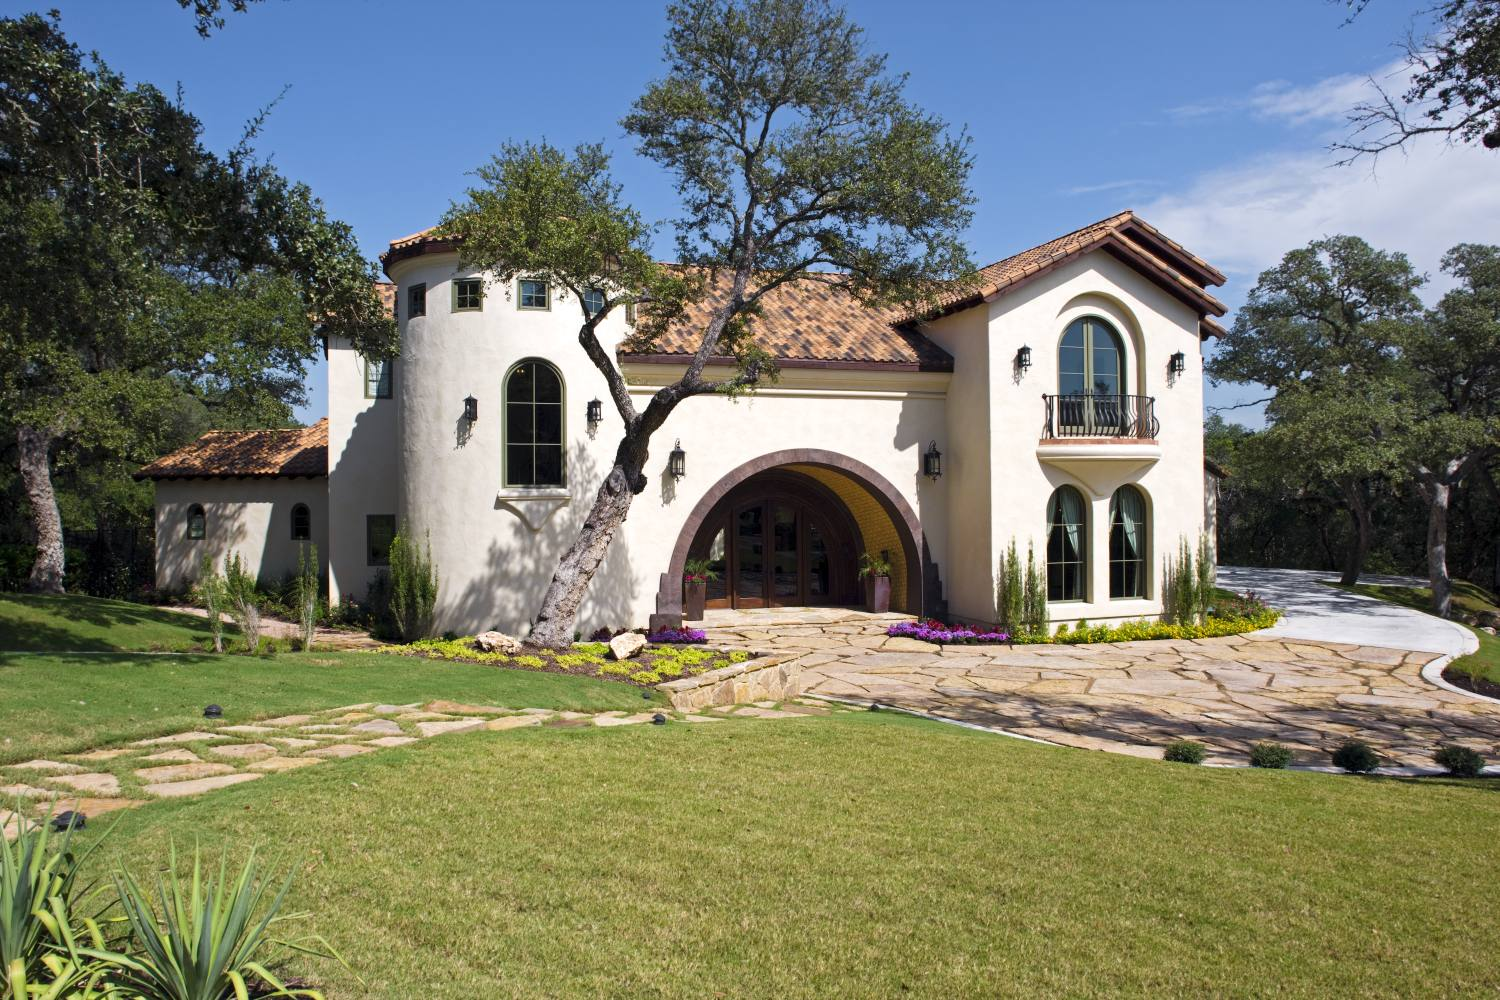 Architecture Home Spanish Villa exterior